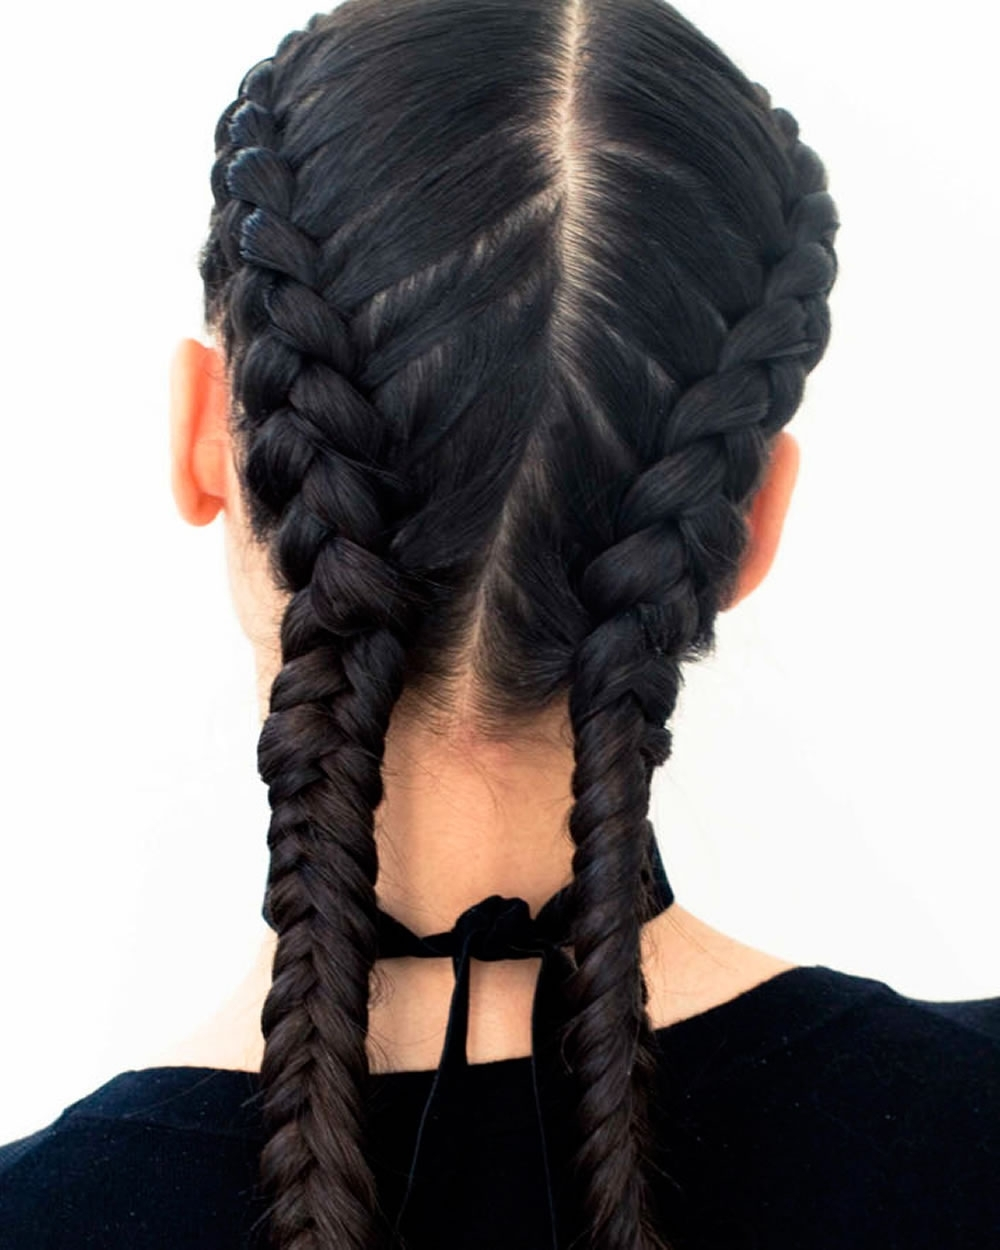 2017 Chunky Two French Braid Hairstyles For 21 French Braid Hairstyles – All You Need To Know About French (View 11 of 15)